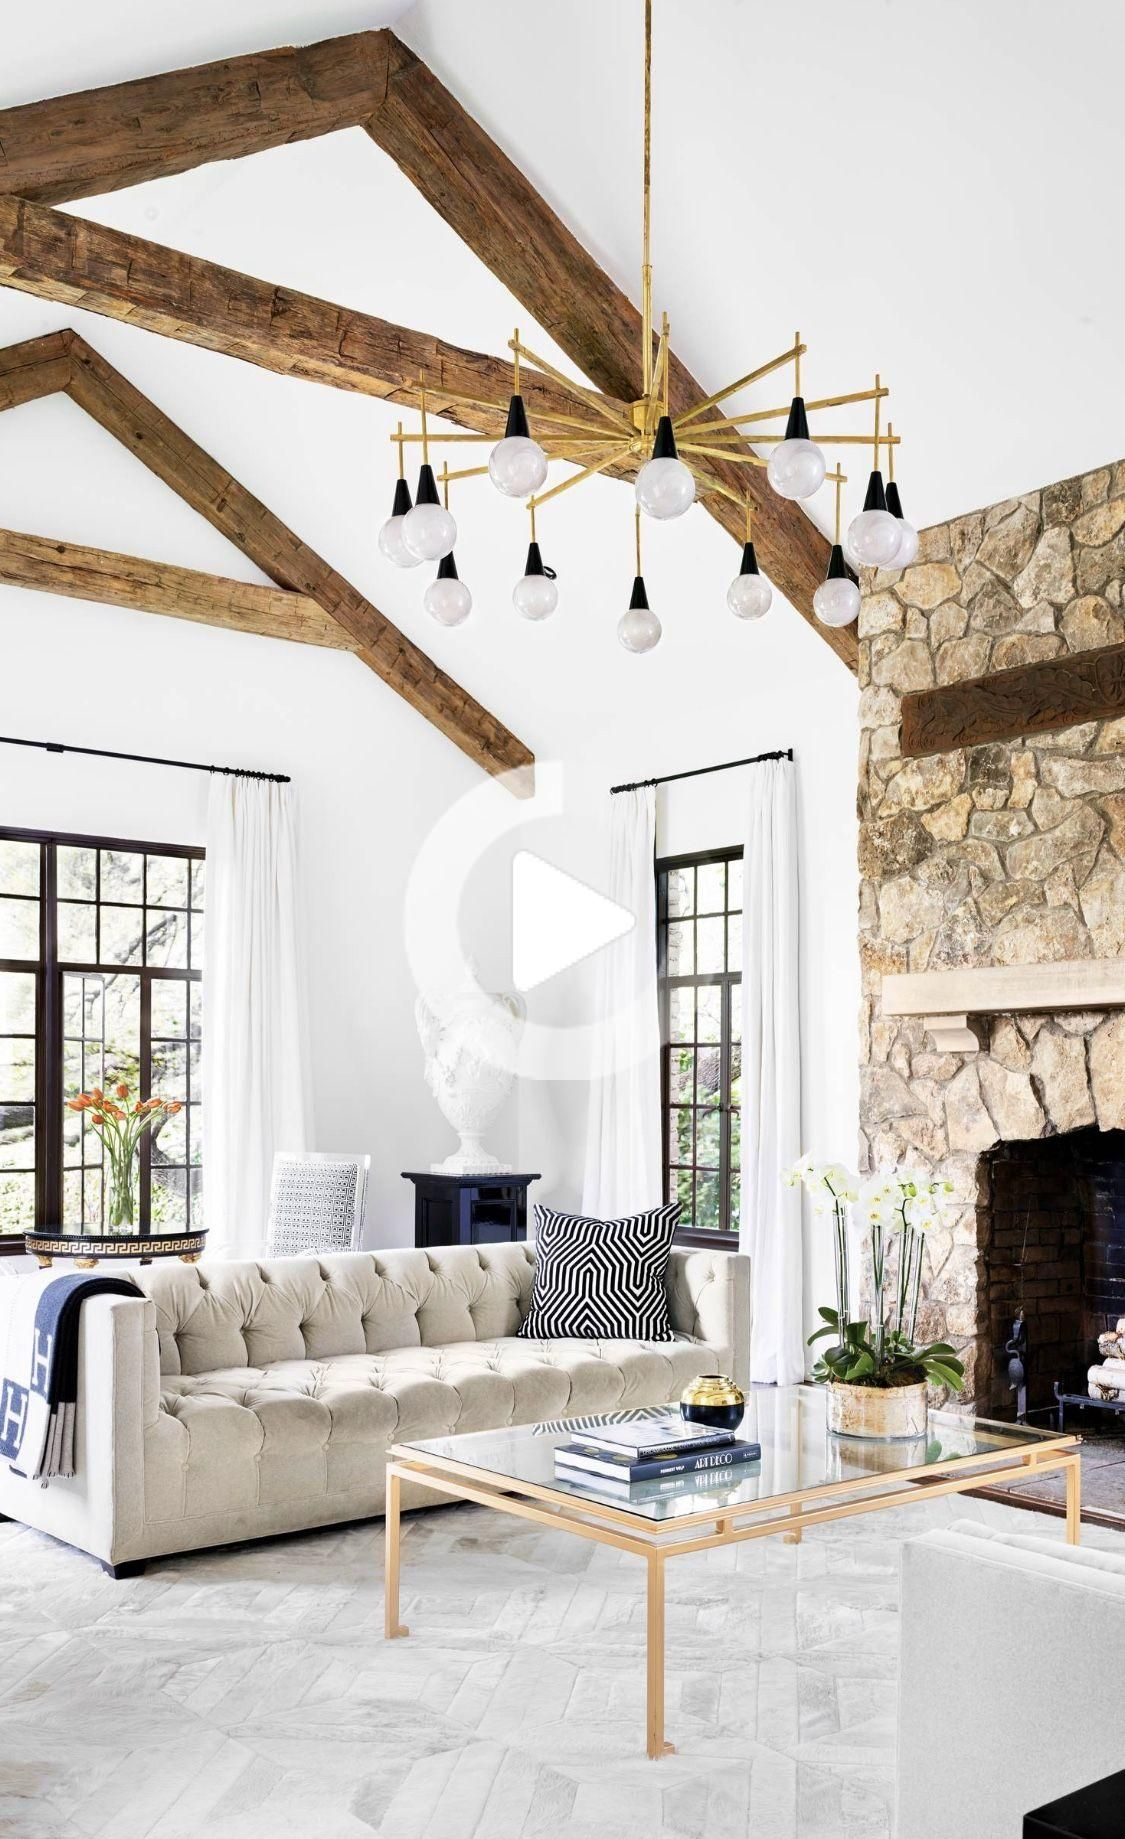 Mediterranean Style Home Living Room Decor With Tufted Sofa Modern Rustic Living Room Farmhouse Style Living Room Decor Country Style Living Room Mediterranean decor living room